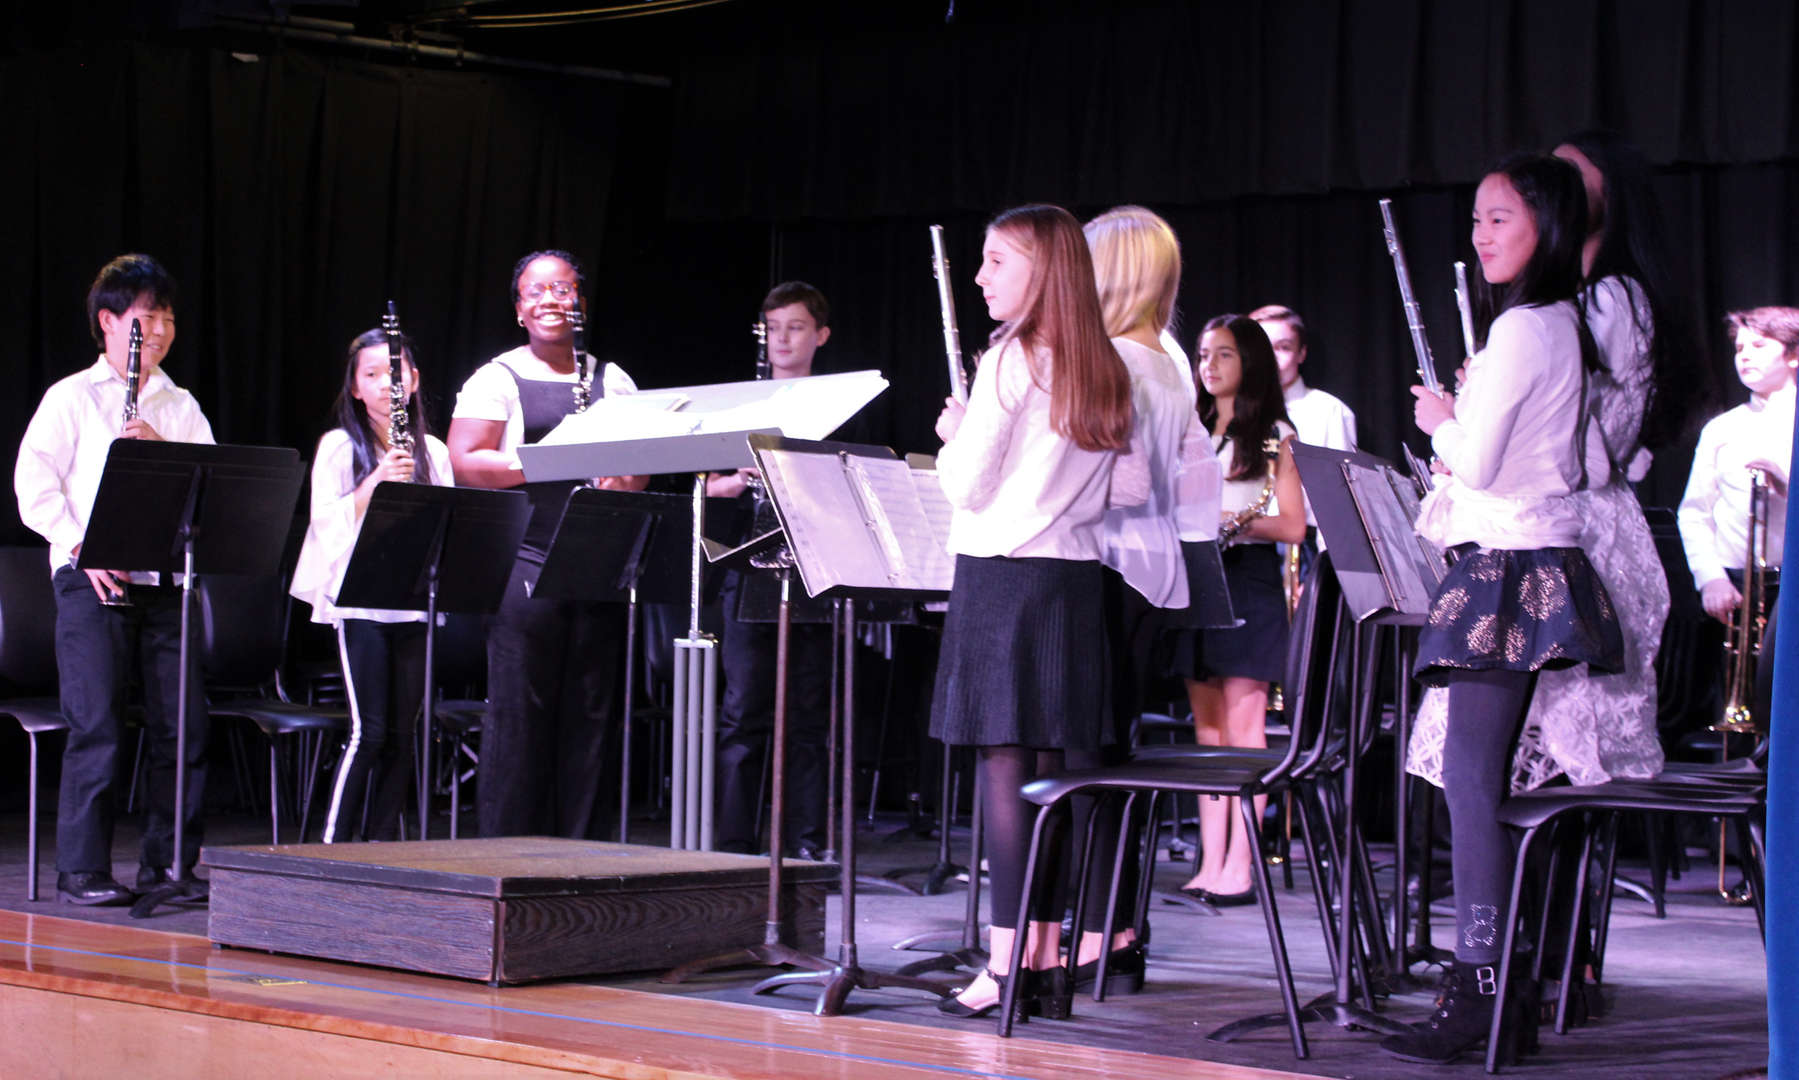 The Sixth Grade Band stands as the audience claps for its Winter Concert performance.